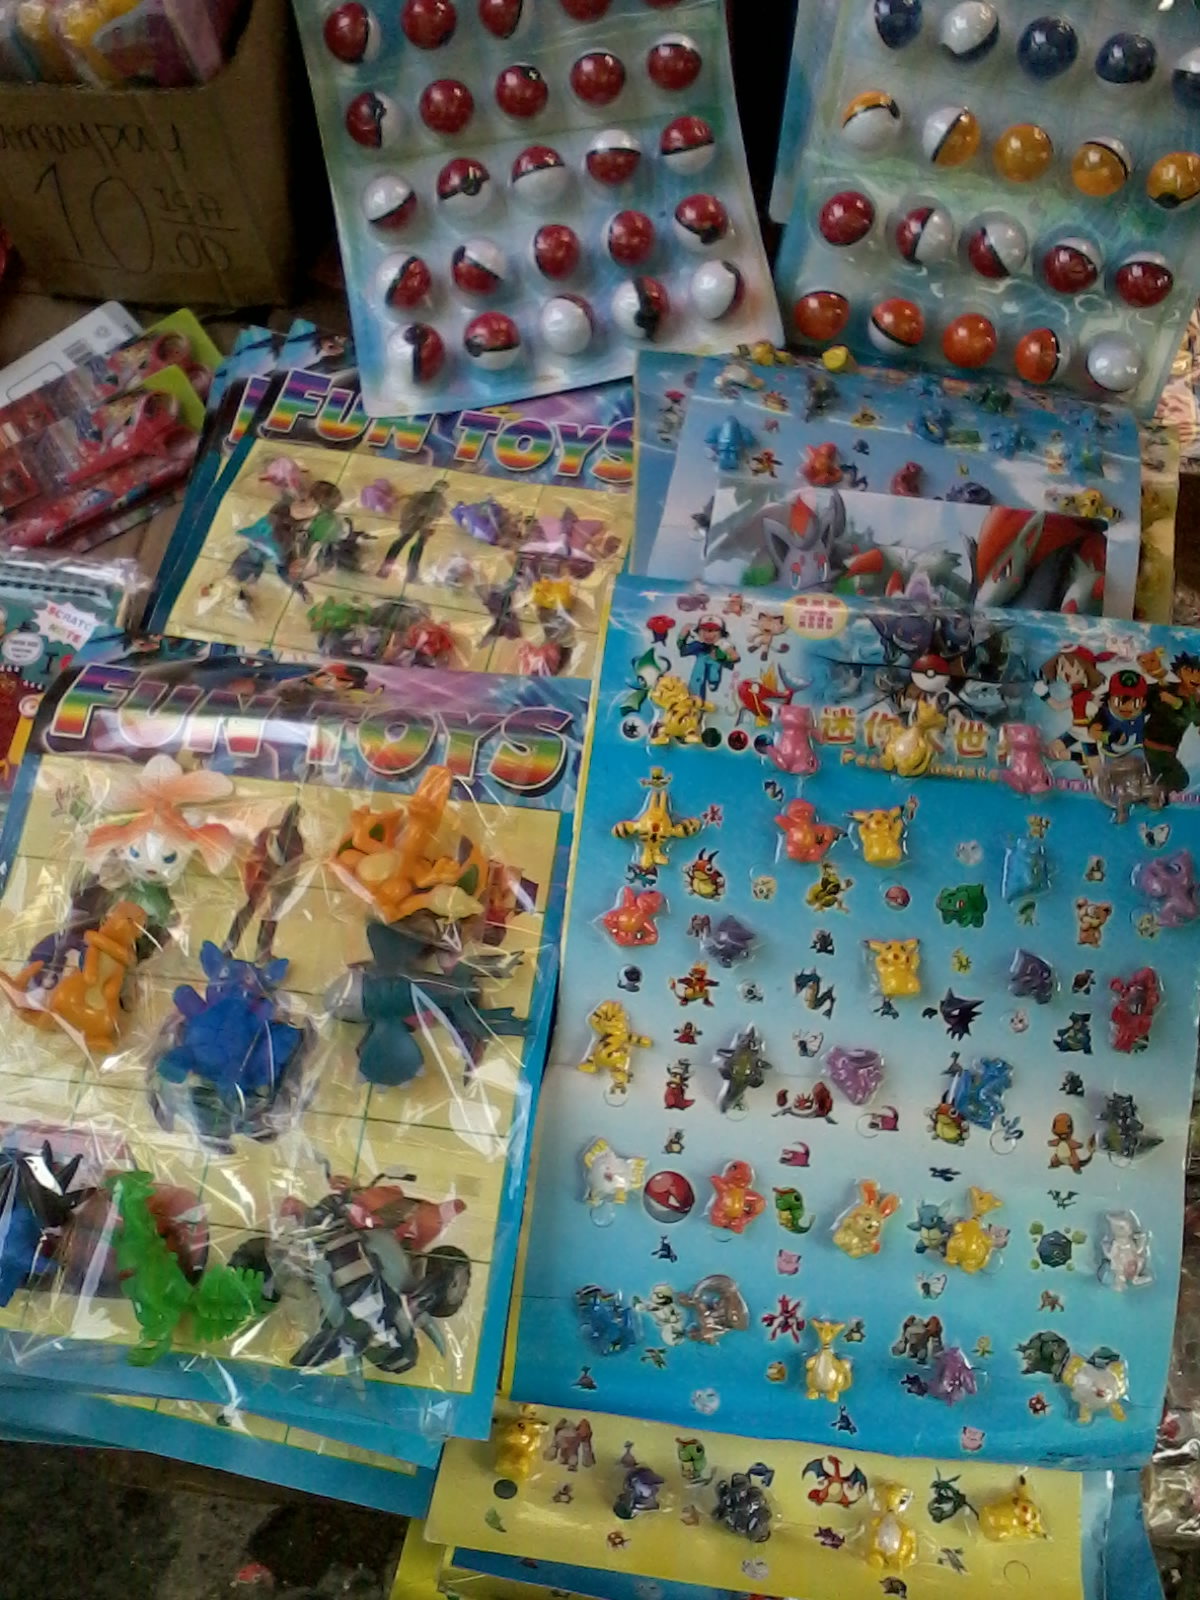 Toys For All : Ecowaste coalition not all pokemon inspired toys are safe